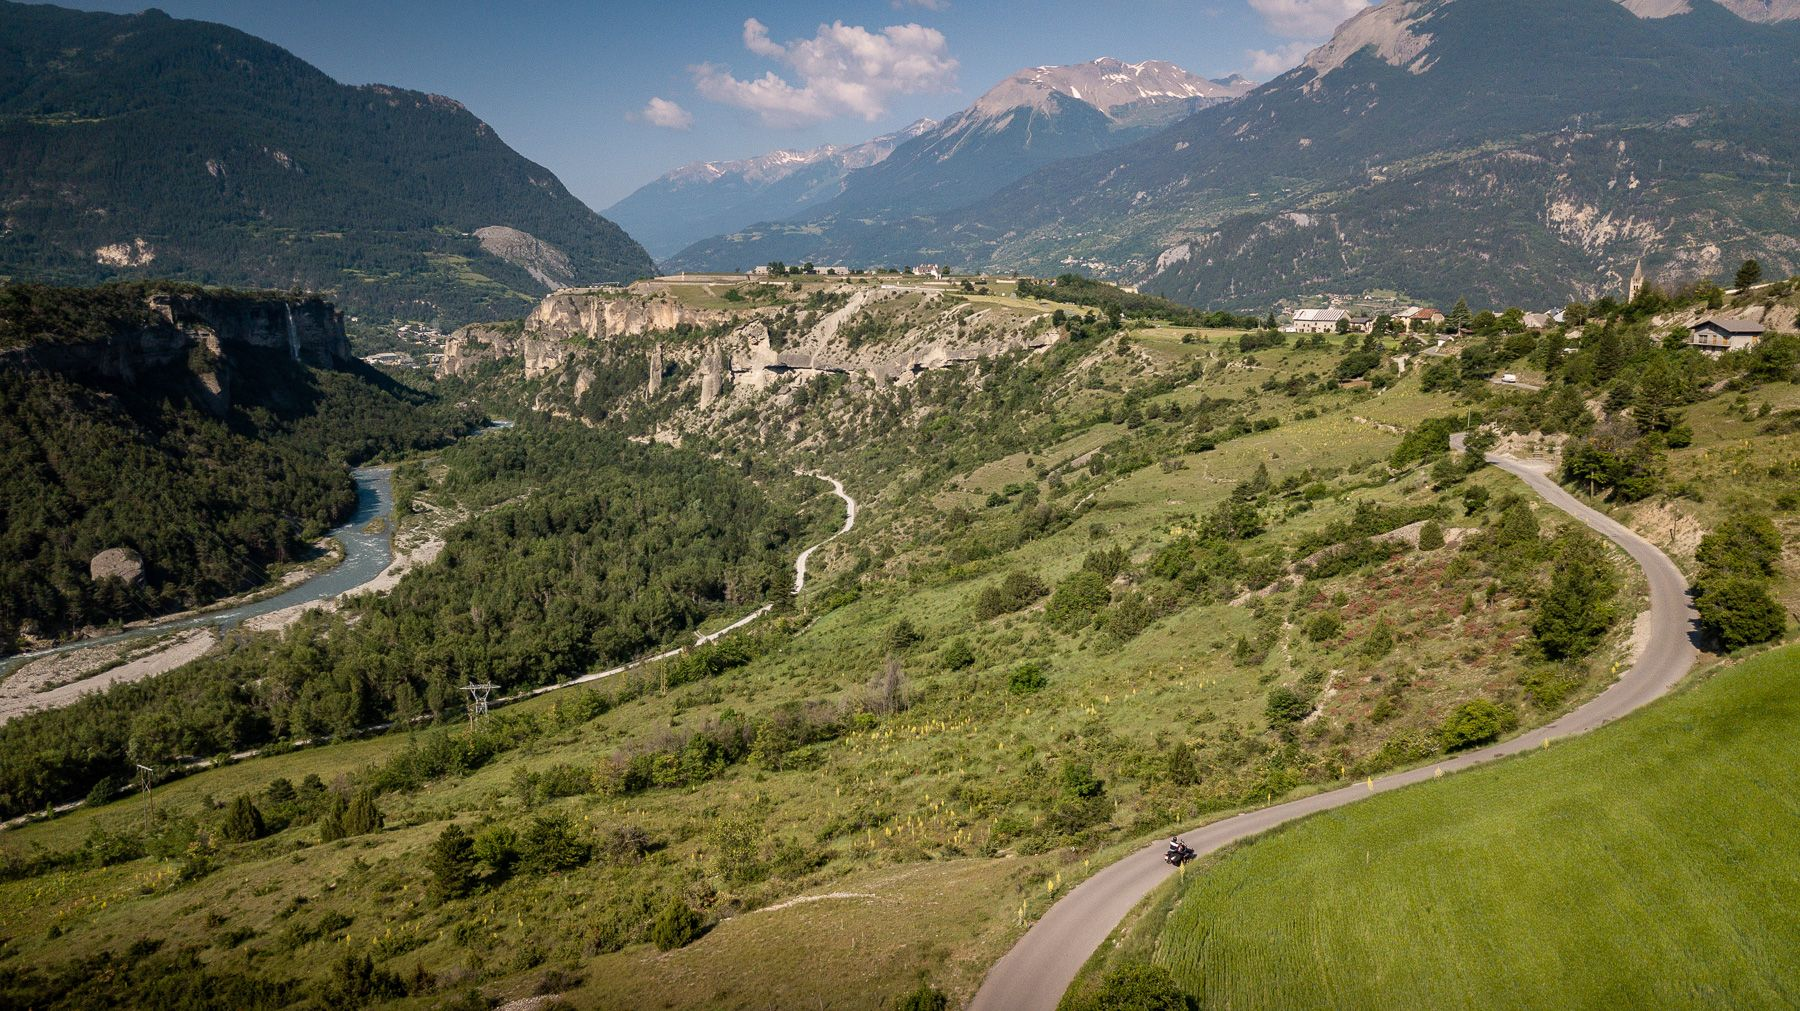 URAL MOTORCYCLES, AND MOTUL PRESENT: A MOTORCYCLE DIARIES ADVENTURE FROM FRANCE TO AUSTRIA!